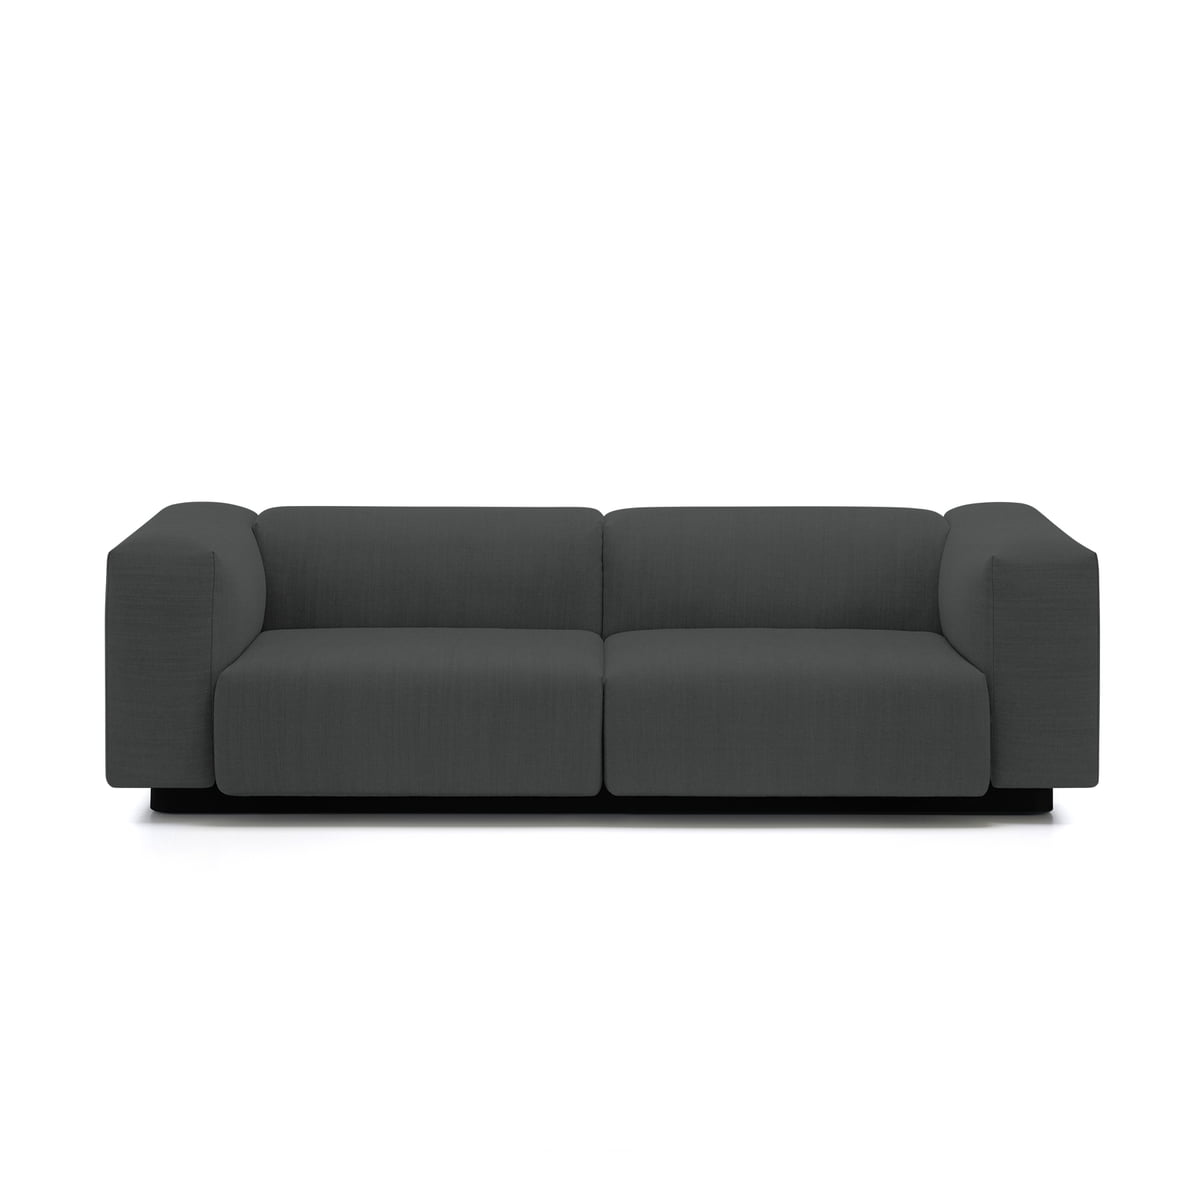 soft modular 2 seater sofa from vitra in the connox shop. Black Bedroom Furniture Sets. Home Design Ideas